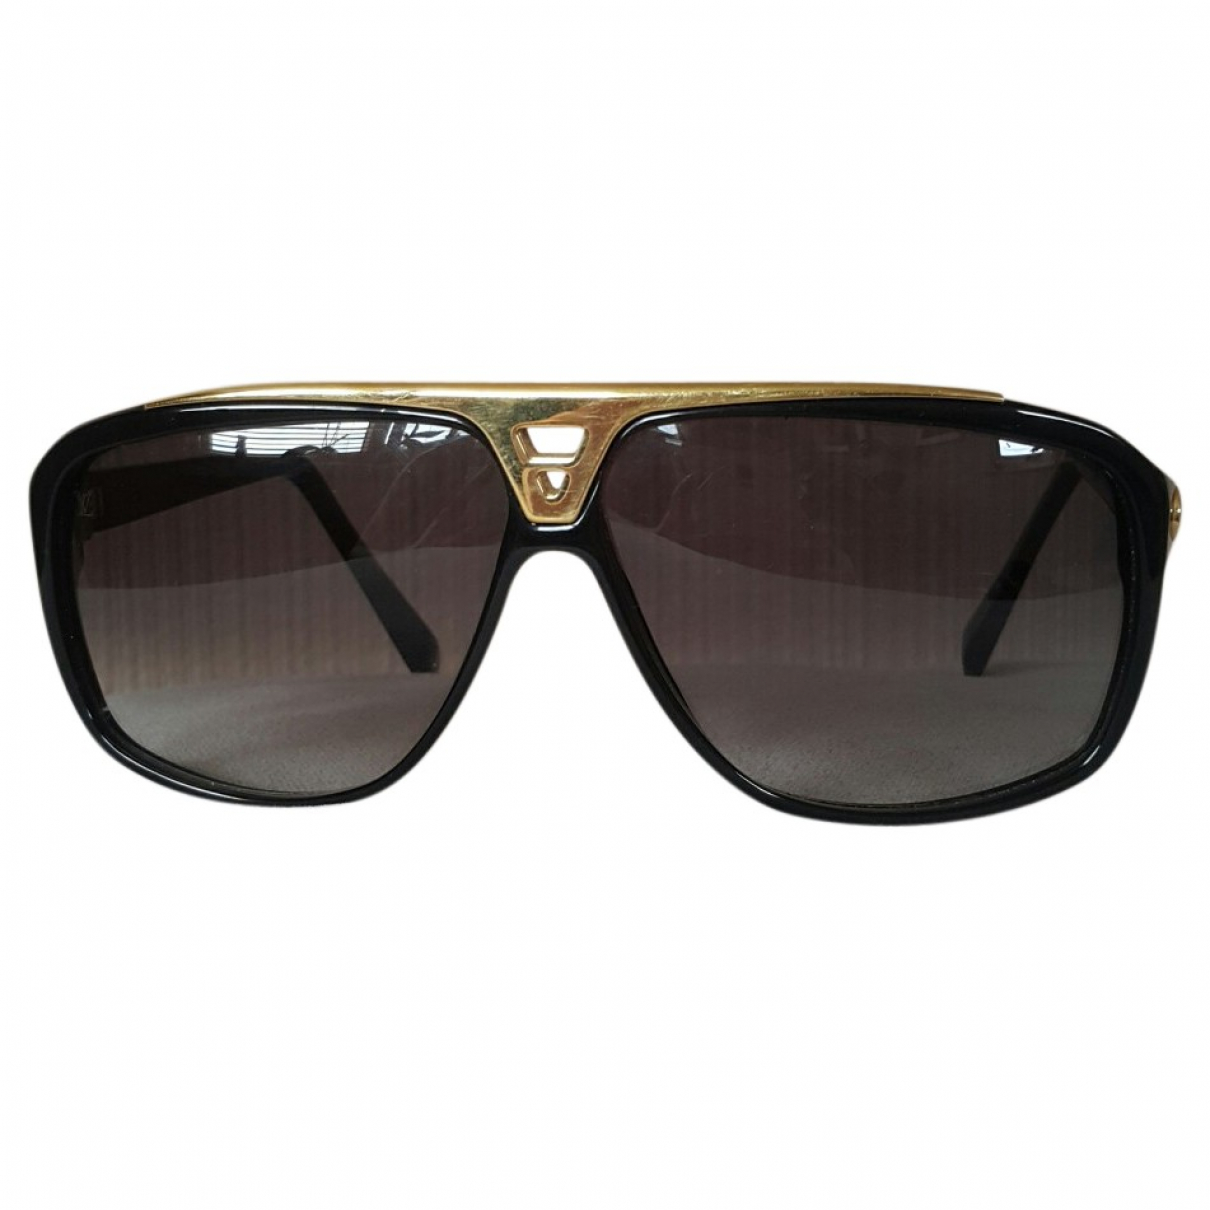 Louis Vuitton \N Black Sunglasses for Women \N